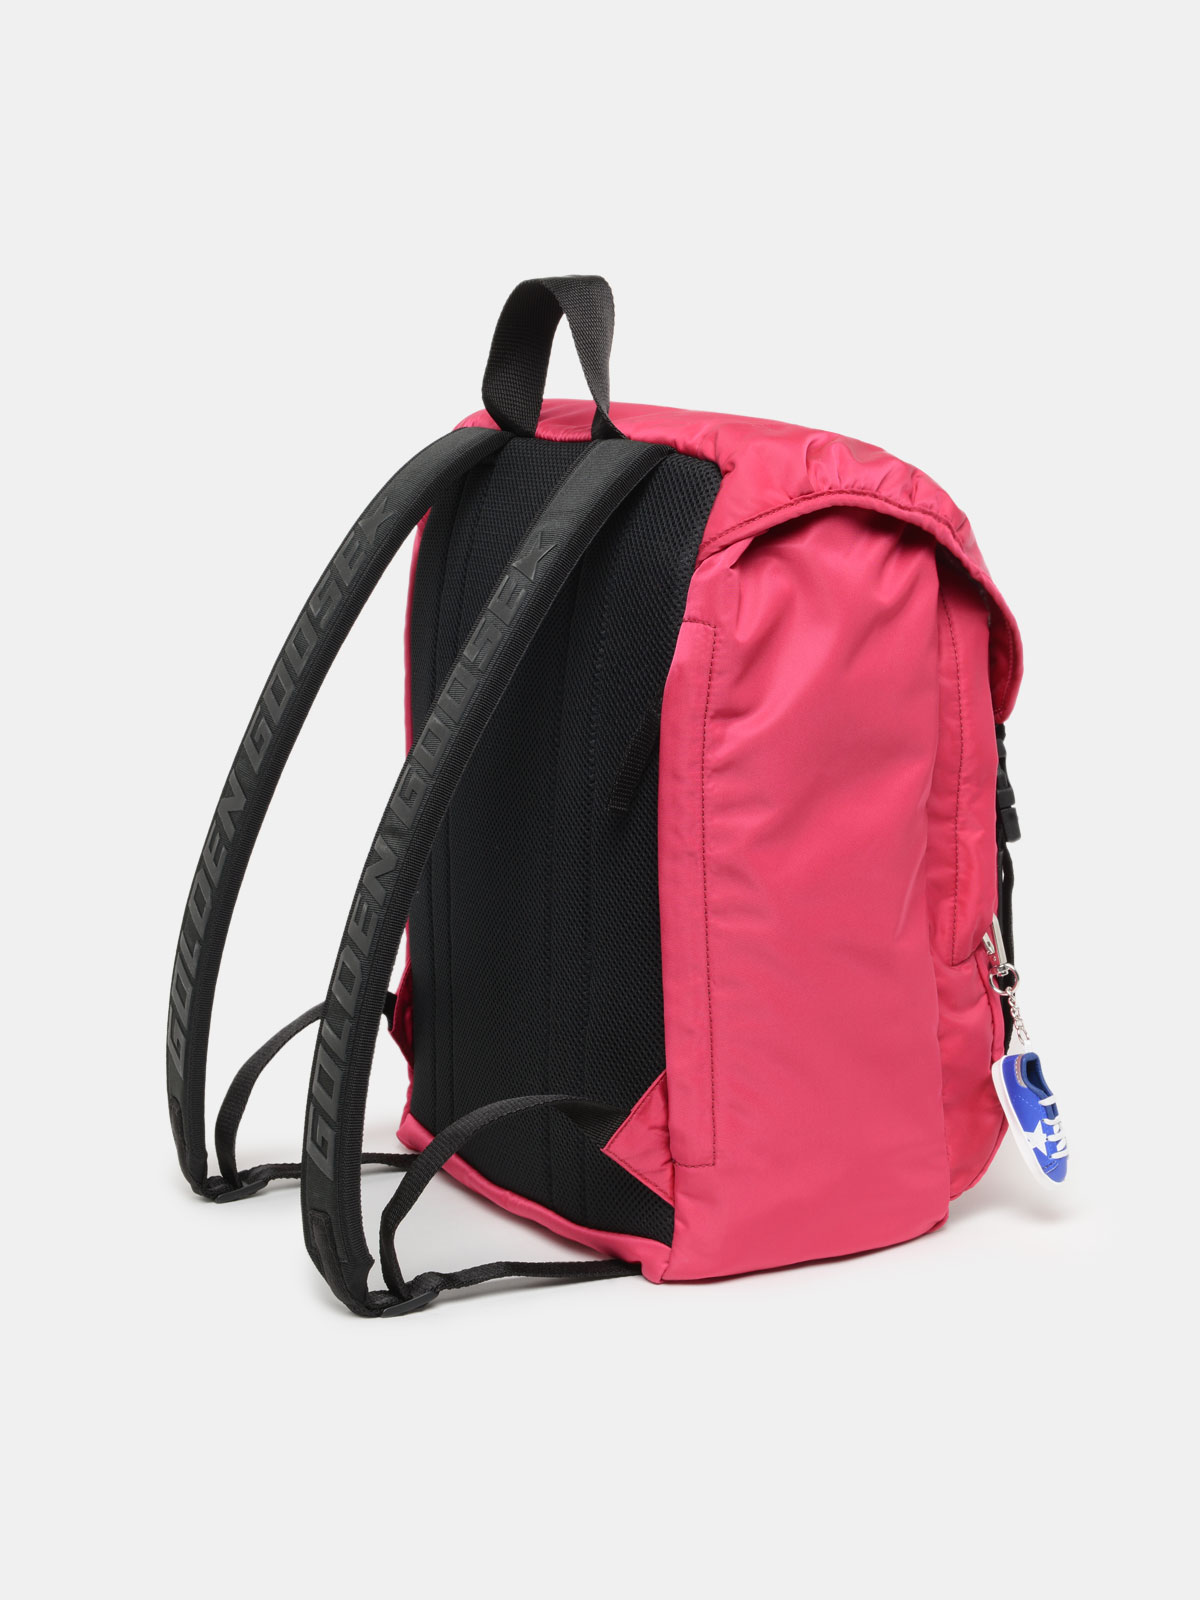 Golden Goose - Fuchsia nylon Journey backpack in